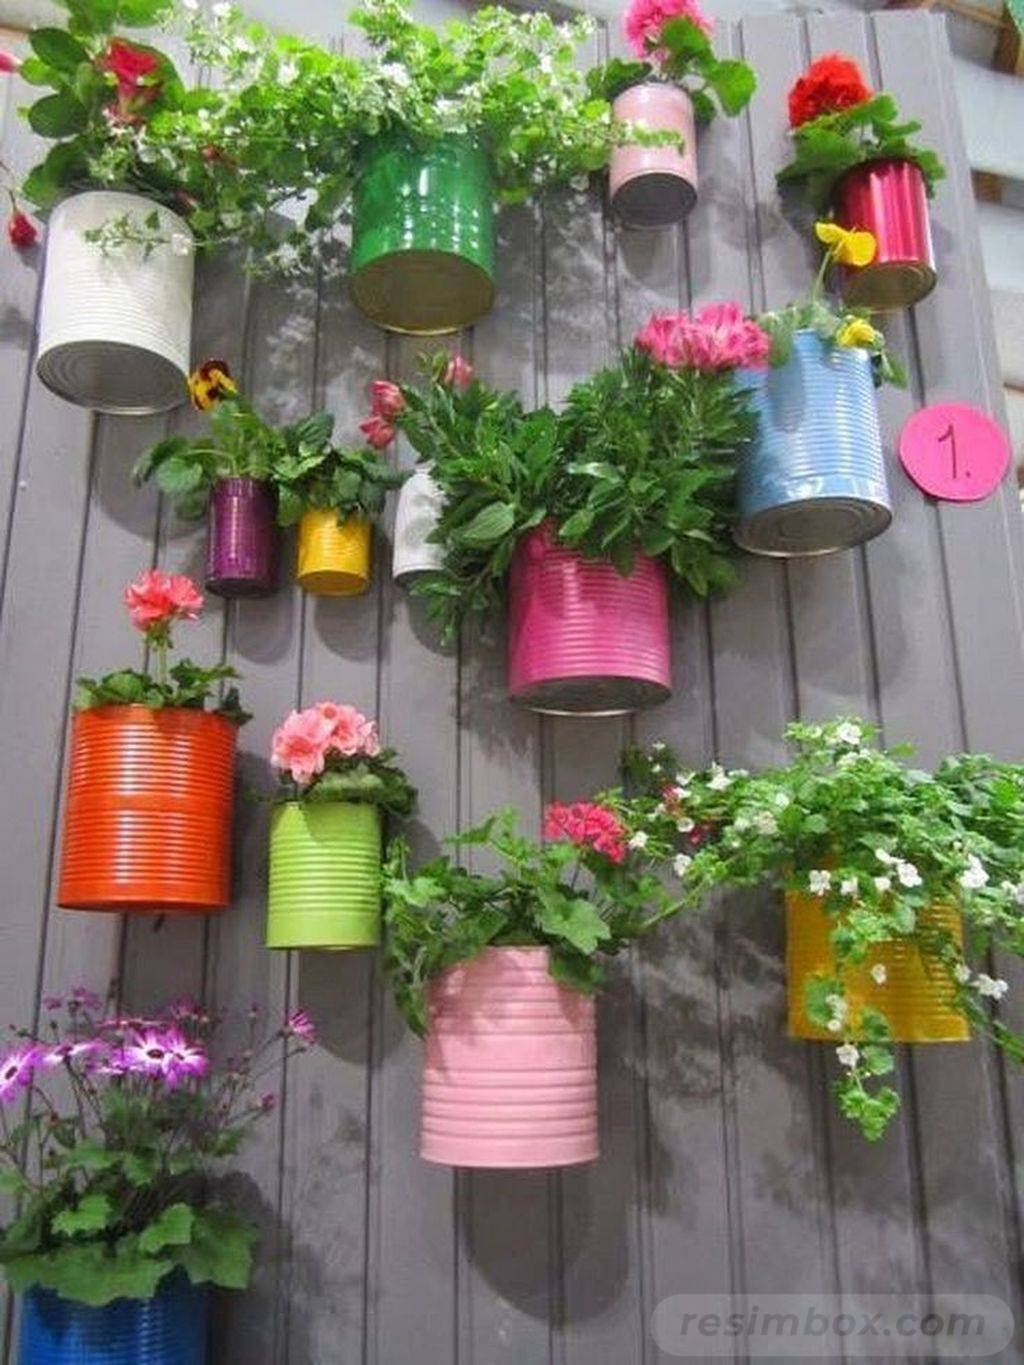 amazing garden ideas-589760513683817721